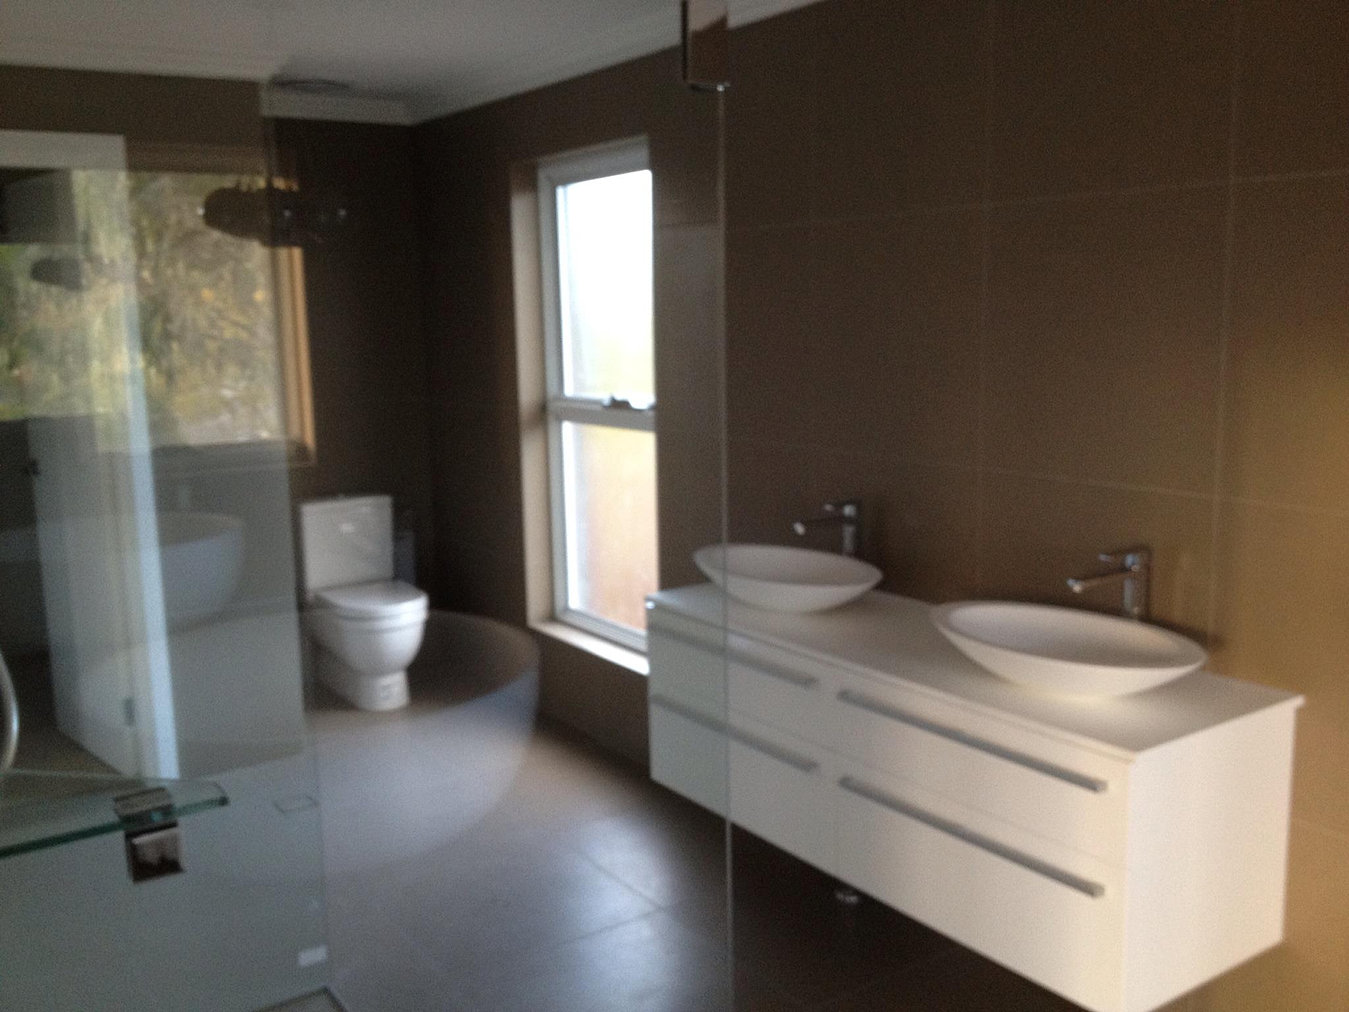 Bathroom renovations hornsby - Freshwater Plumbing Northern Beaches